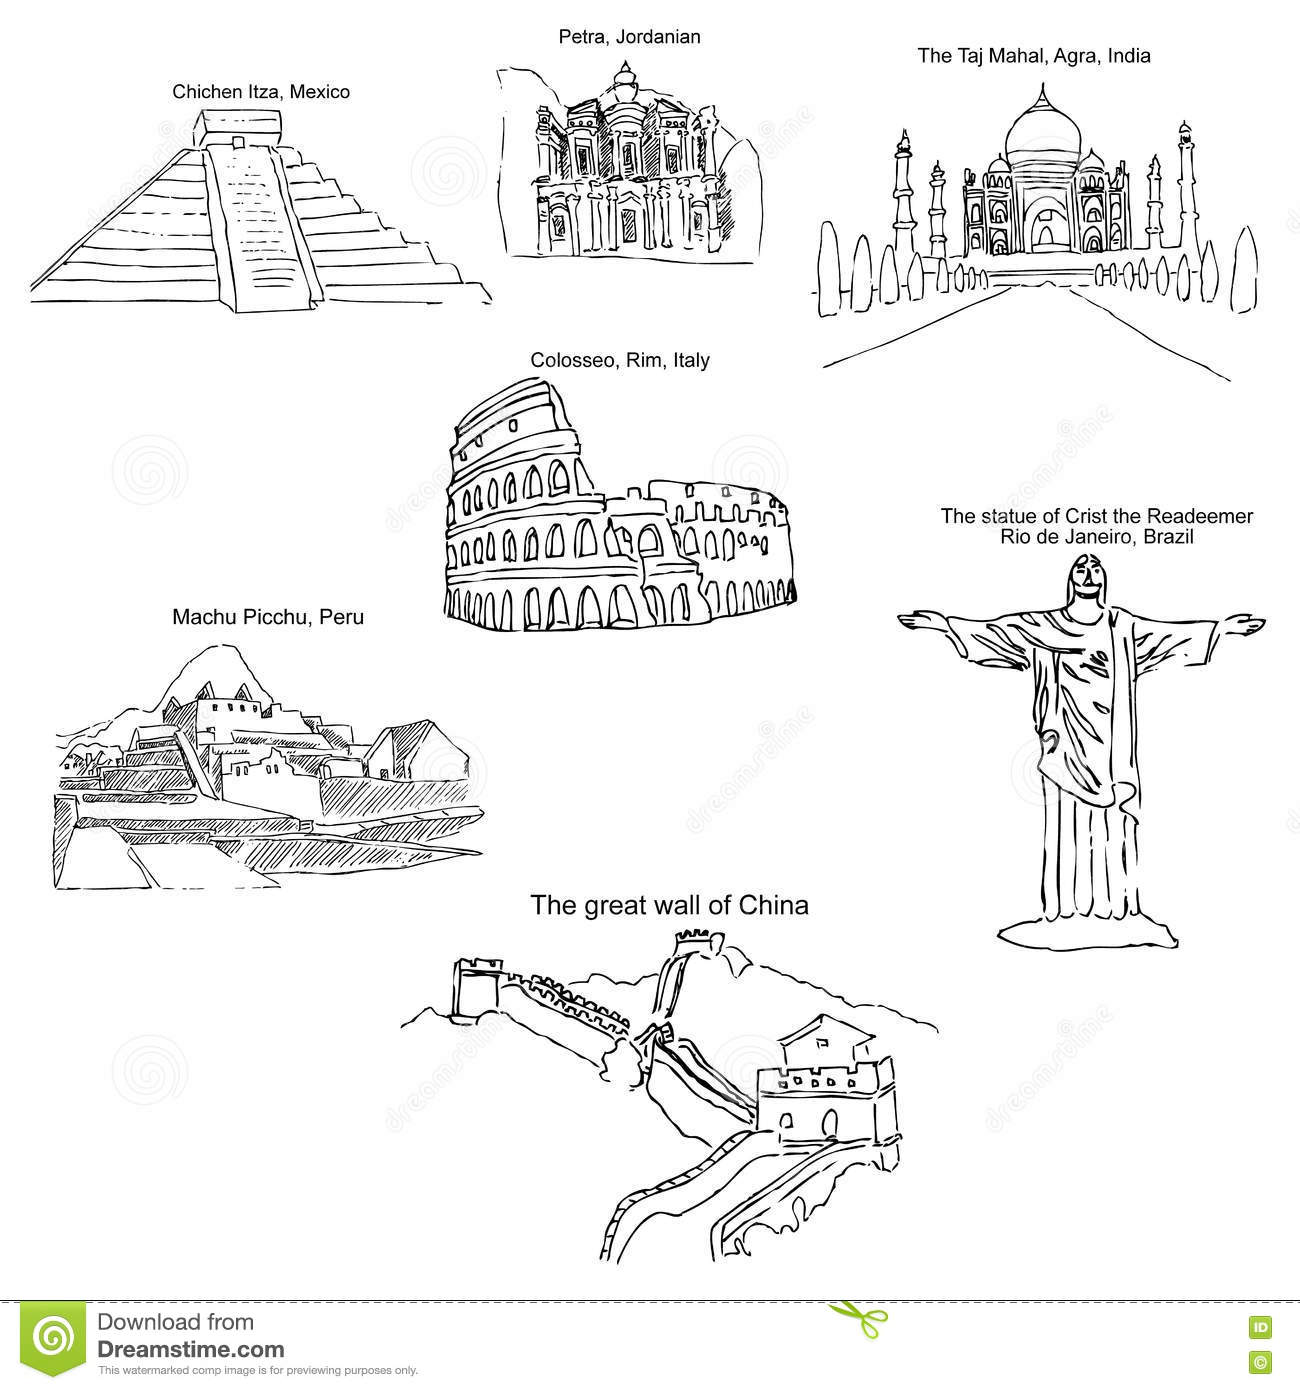 The modern seven wonders of the world sketch pencil drawing by hand vector